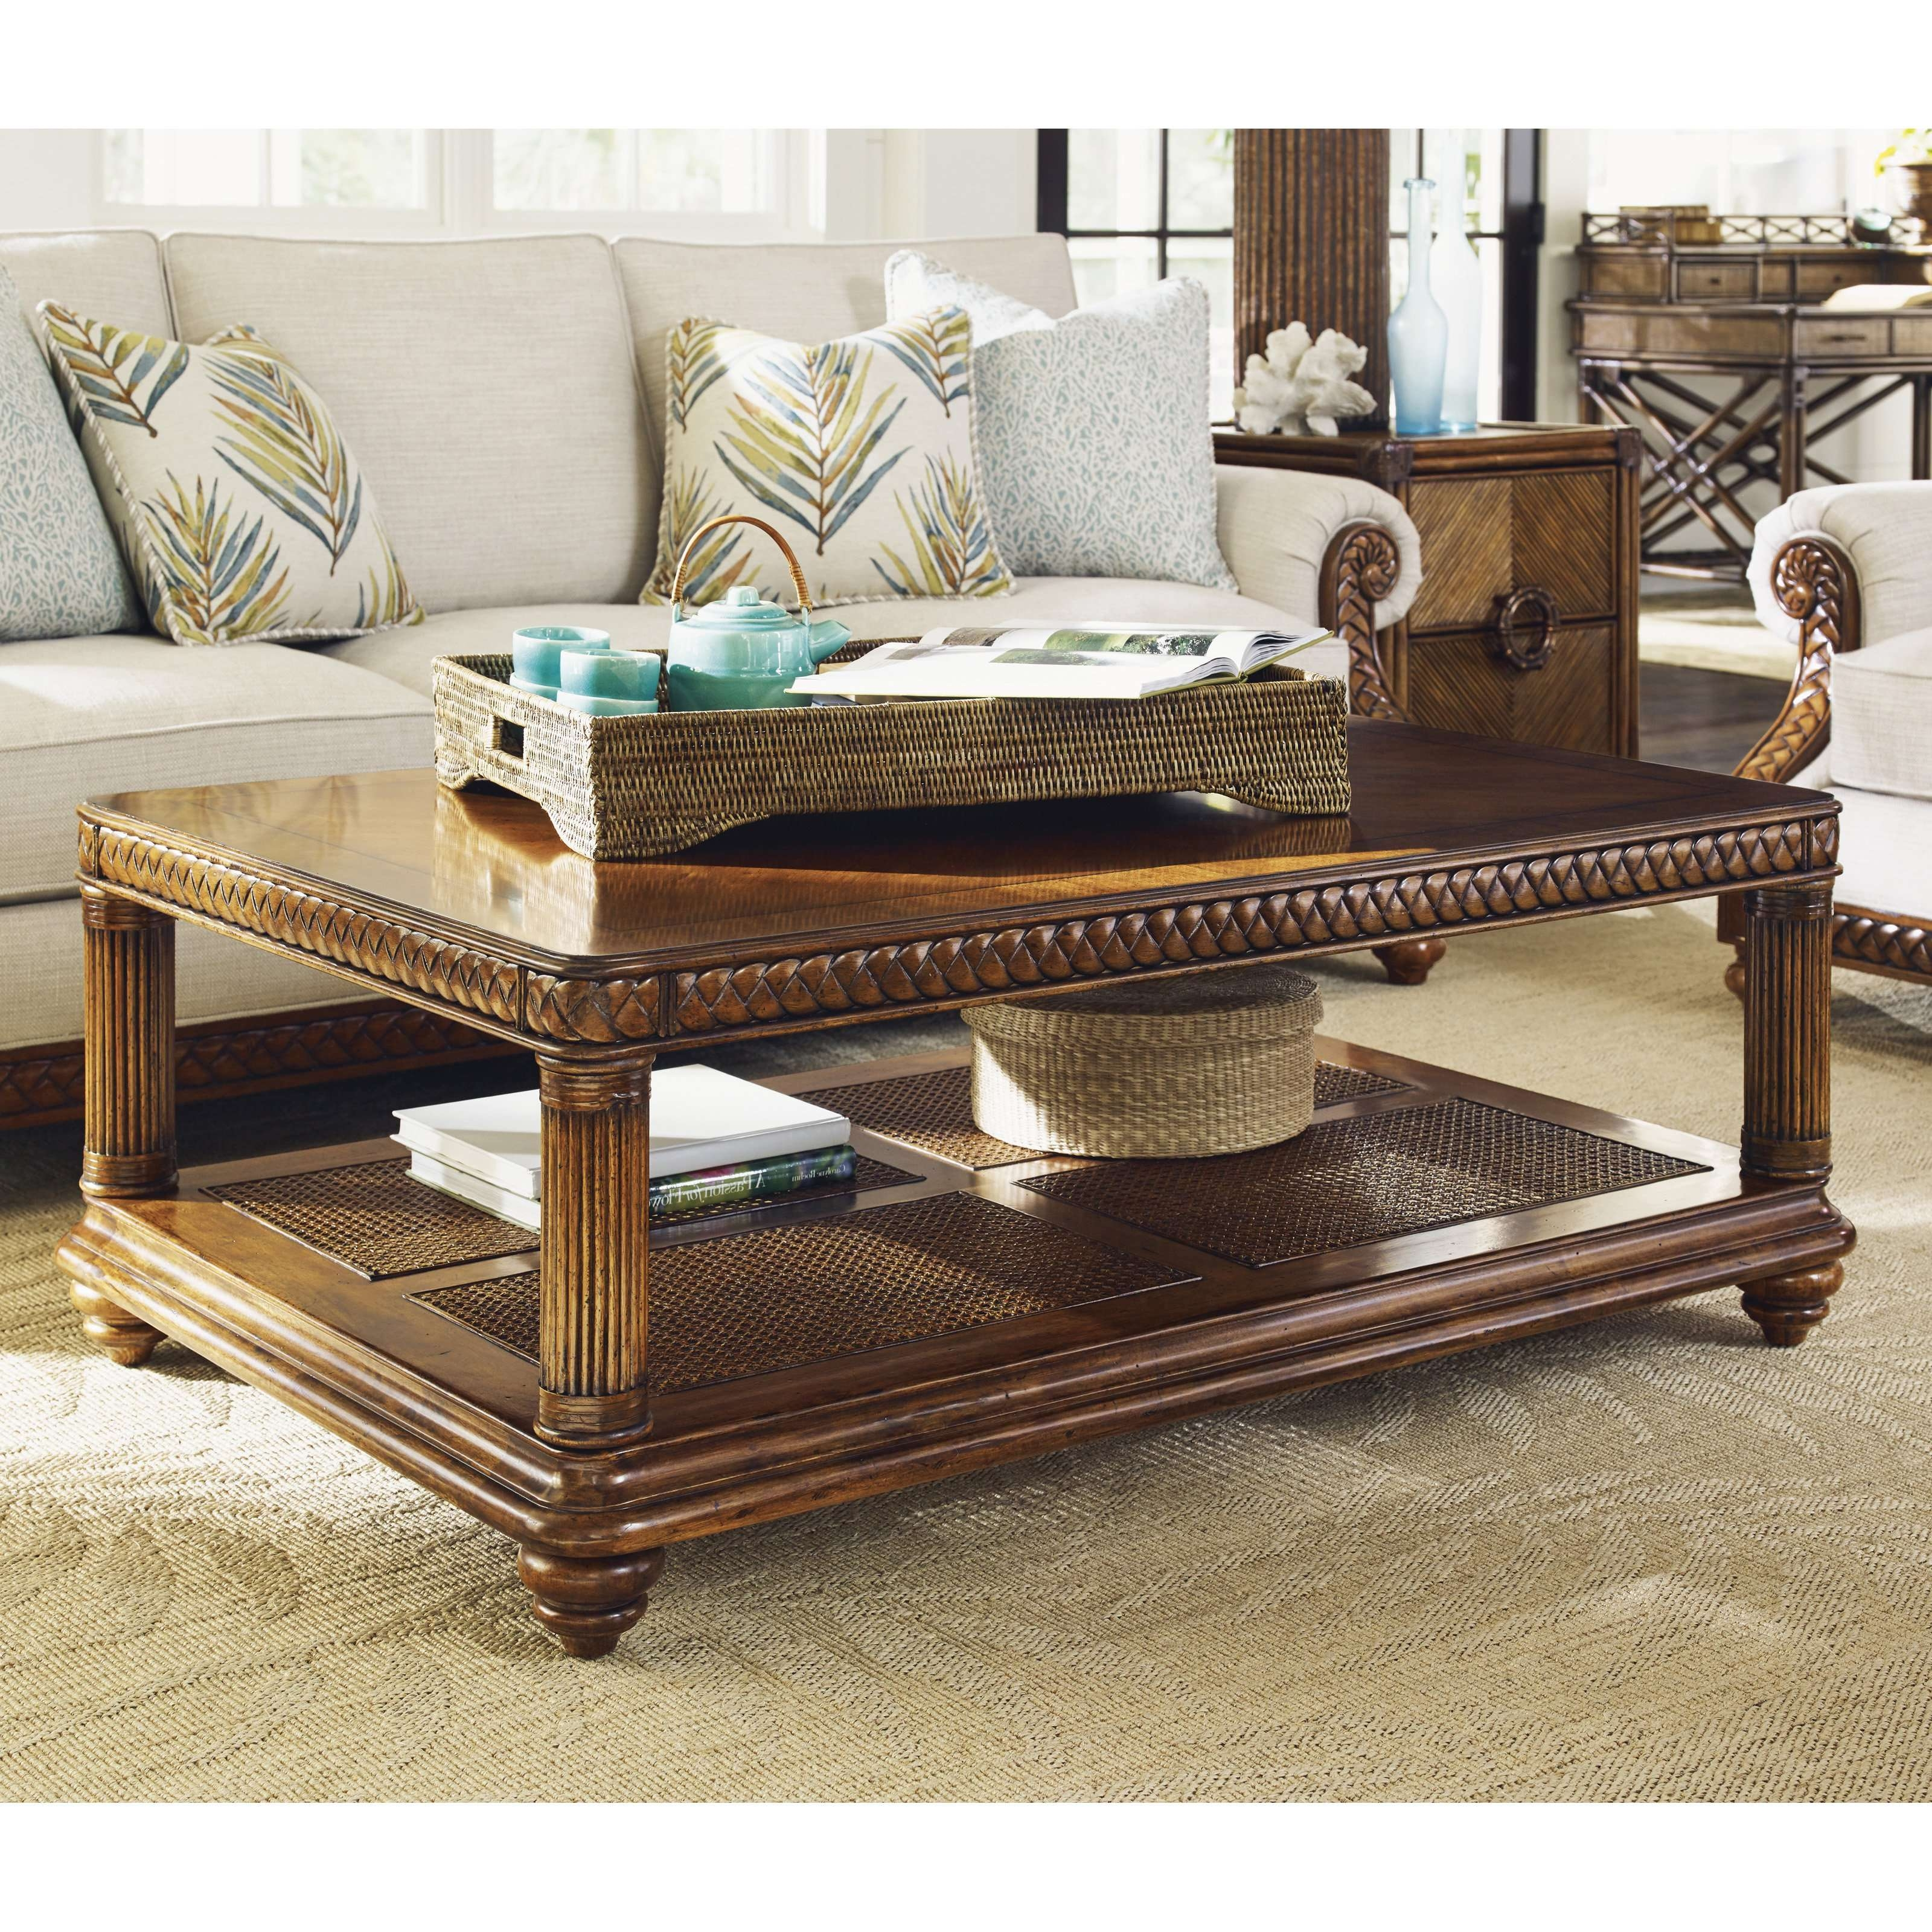 A.r.t. Furniture Old World Rectangular Coffee Table – Pomegranate Throughout Well Liked Large Rectangular Coffee Tables (Gallery 11 of 20)